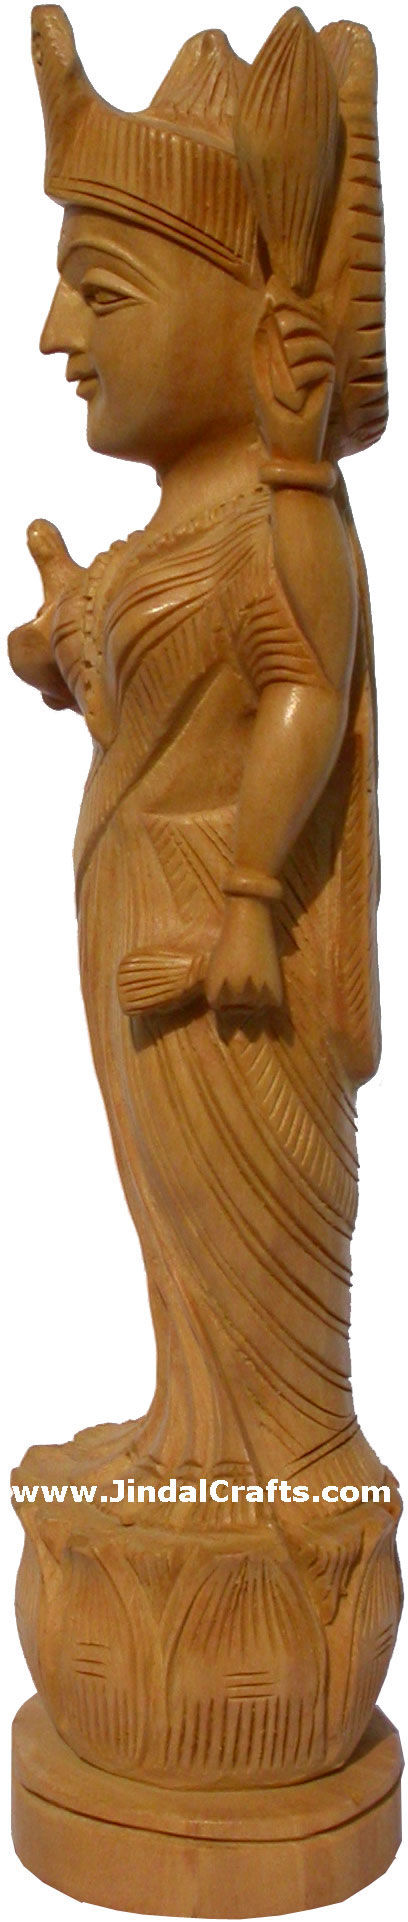 Wooden Goddess Laxmi Handcarved Statue Hinduism Carving Art Indian Handicrafts